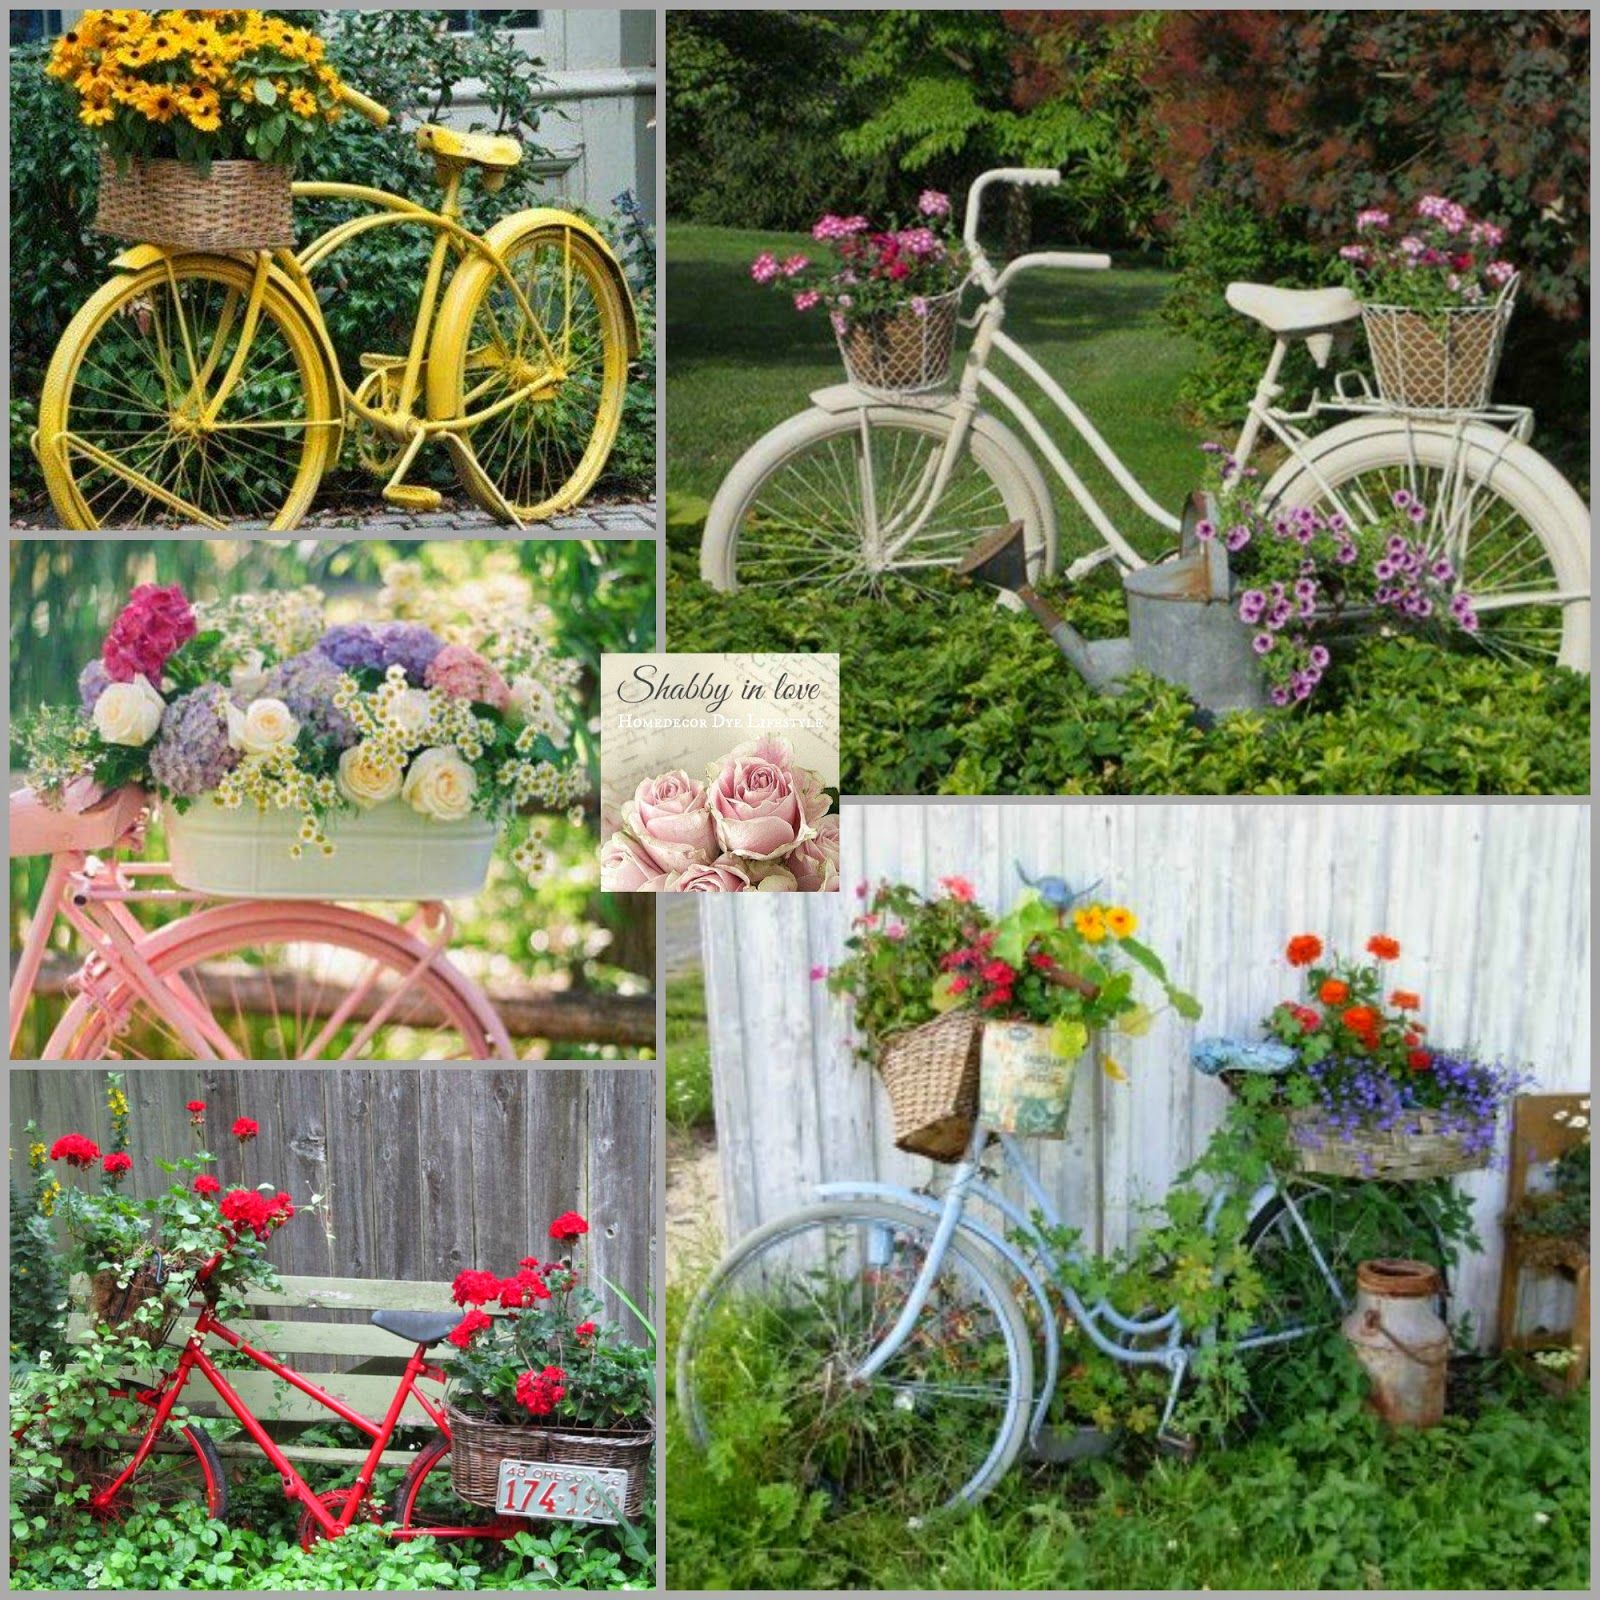 Vintage Bicycle Planters: I would love one of these. Maybe next year ...